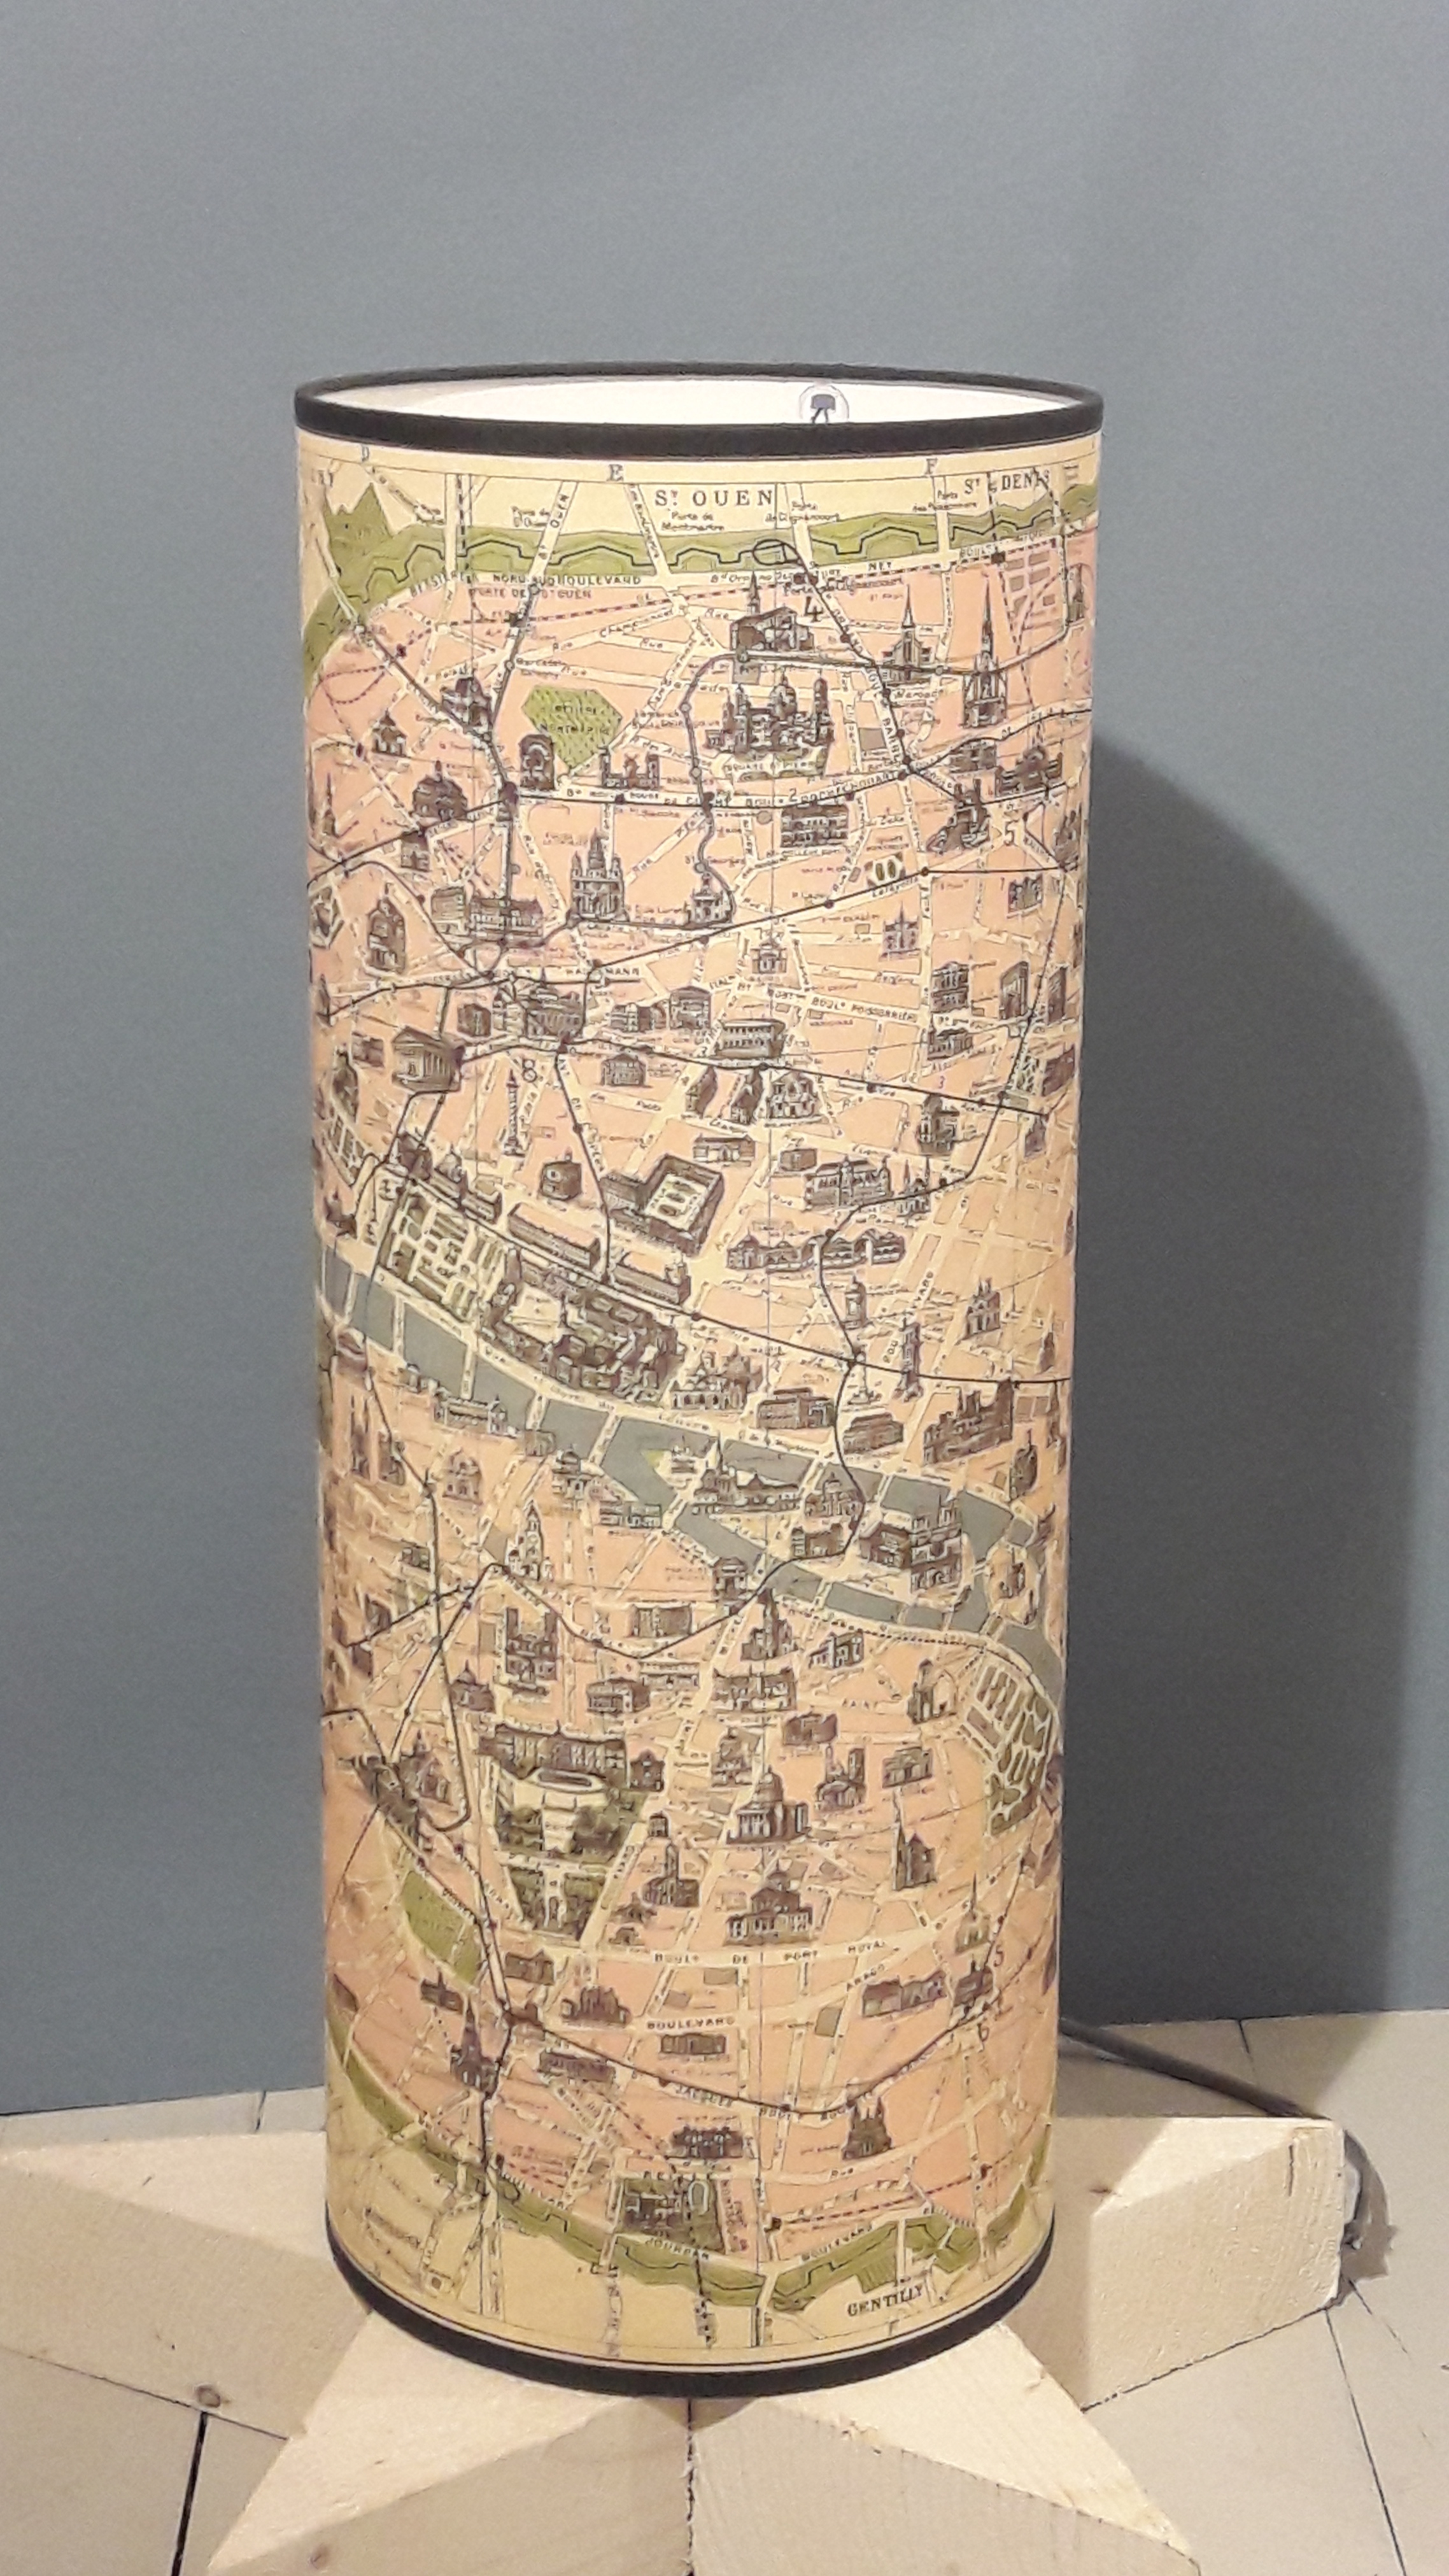 Magasin Luminaire Paris Lampe Totem Plan De Paris Pastel